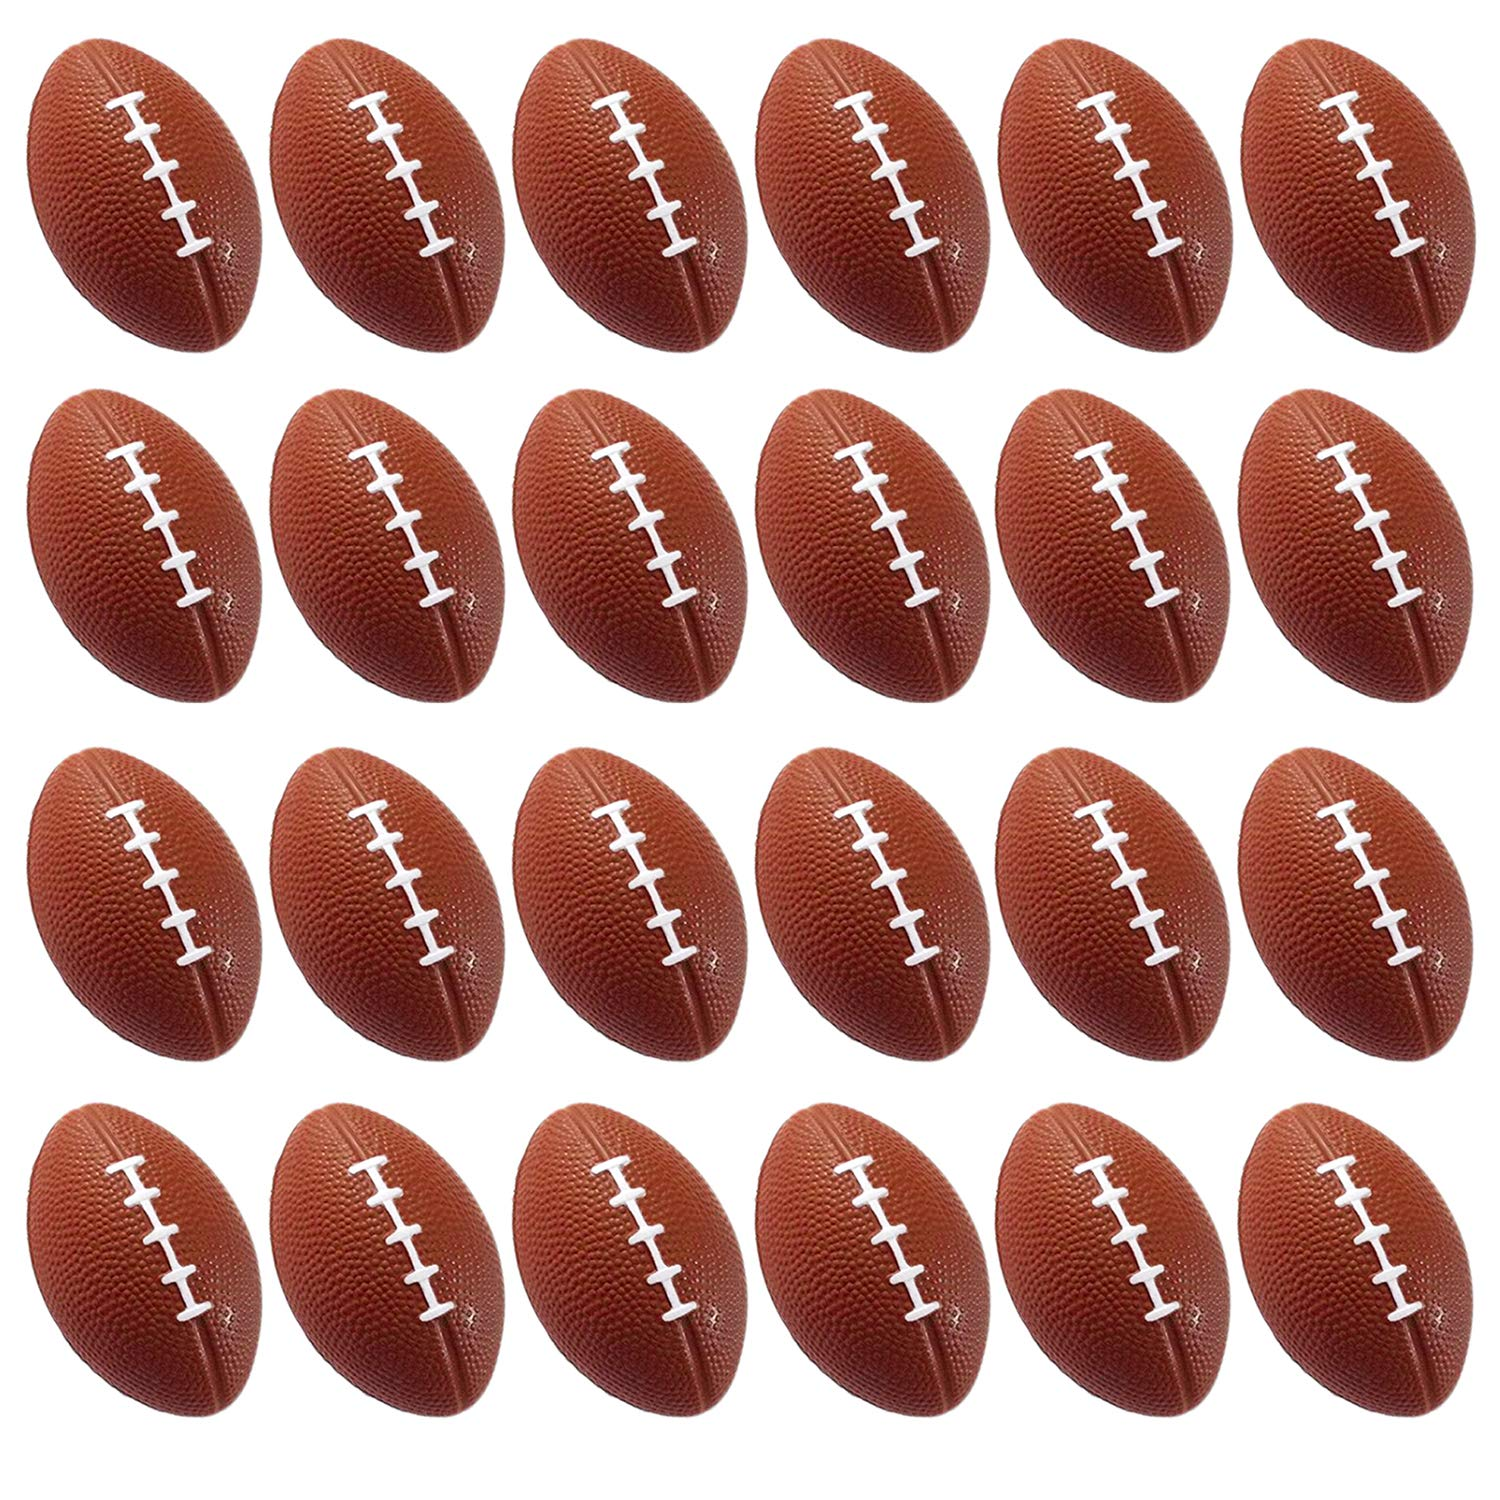 Basketballs Baseball Anxiety Relief 12 Pack 24 Pack Baseball Soccer Ball Relaxation Football Basketball Squeeze Foam for Stress Relaxation. Mini Sports Balls for Kids Party Favor Toy Wall2Wall Imports 24 Pack Squeeze Foam for Stress